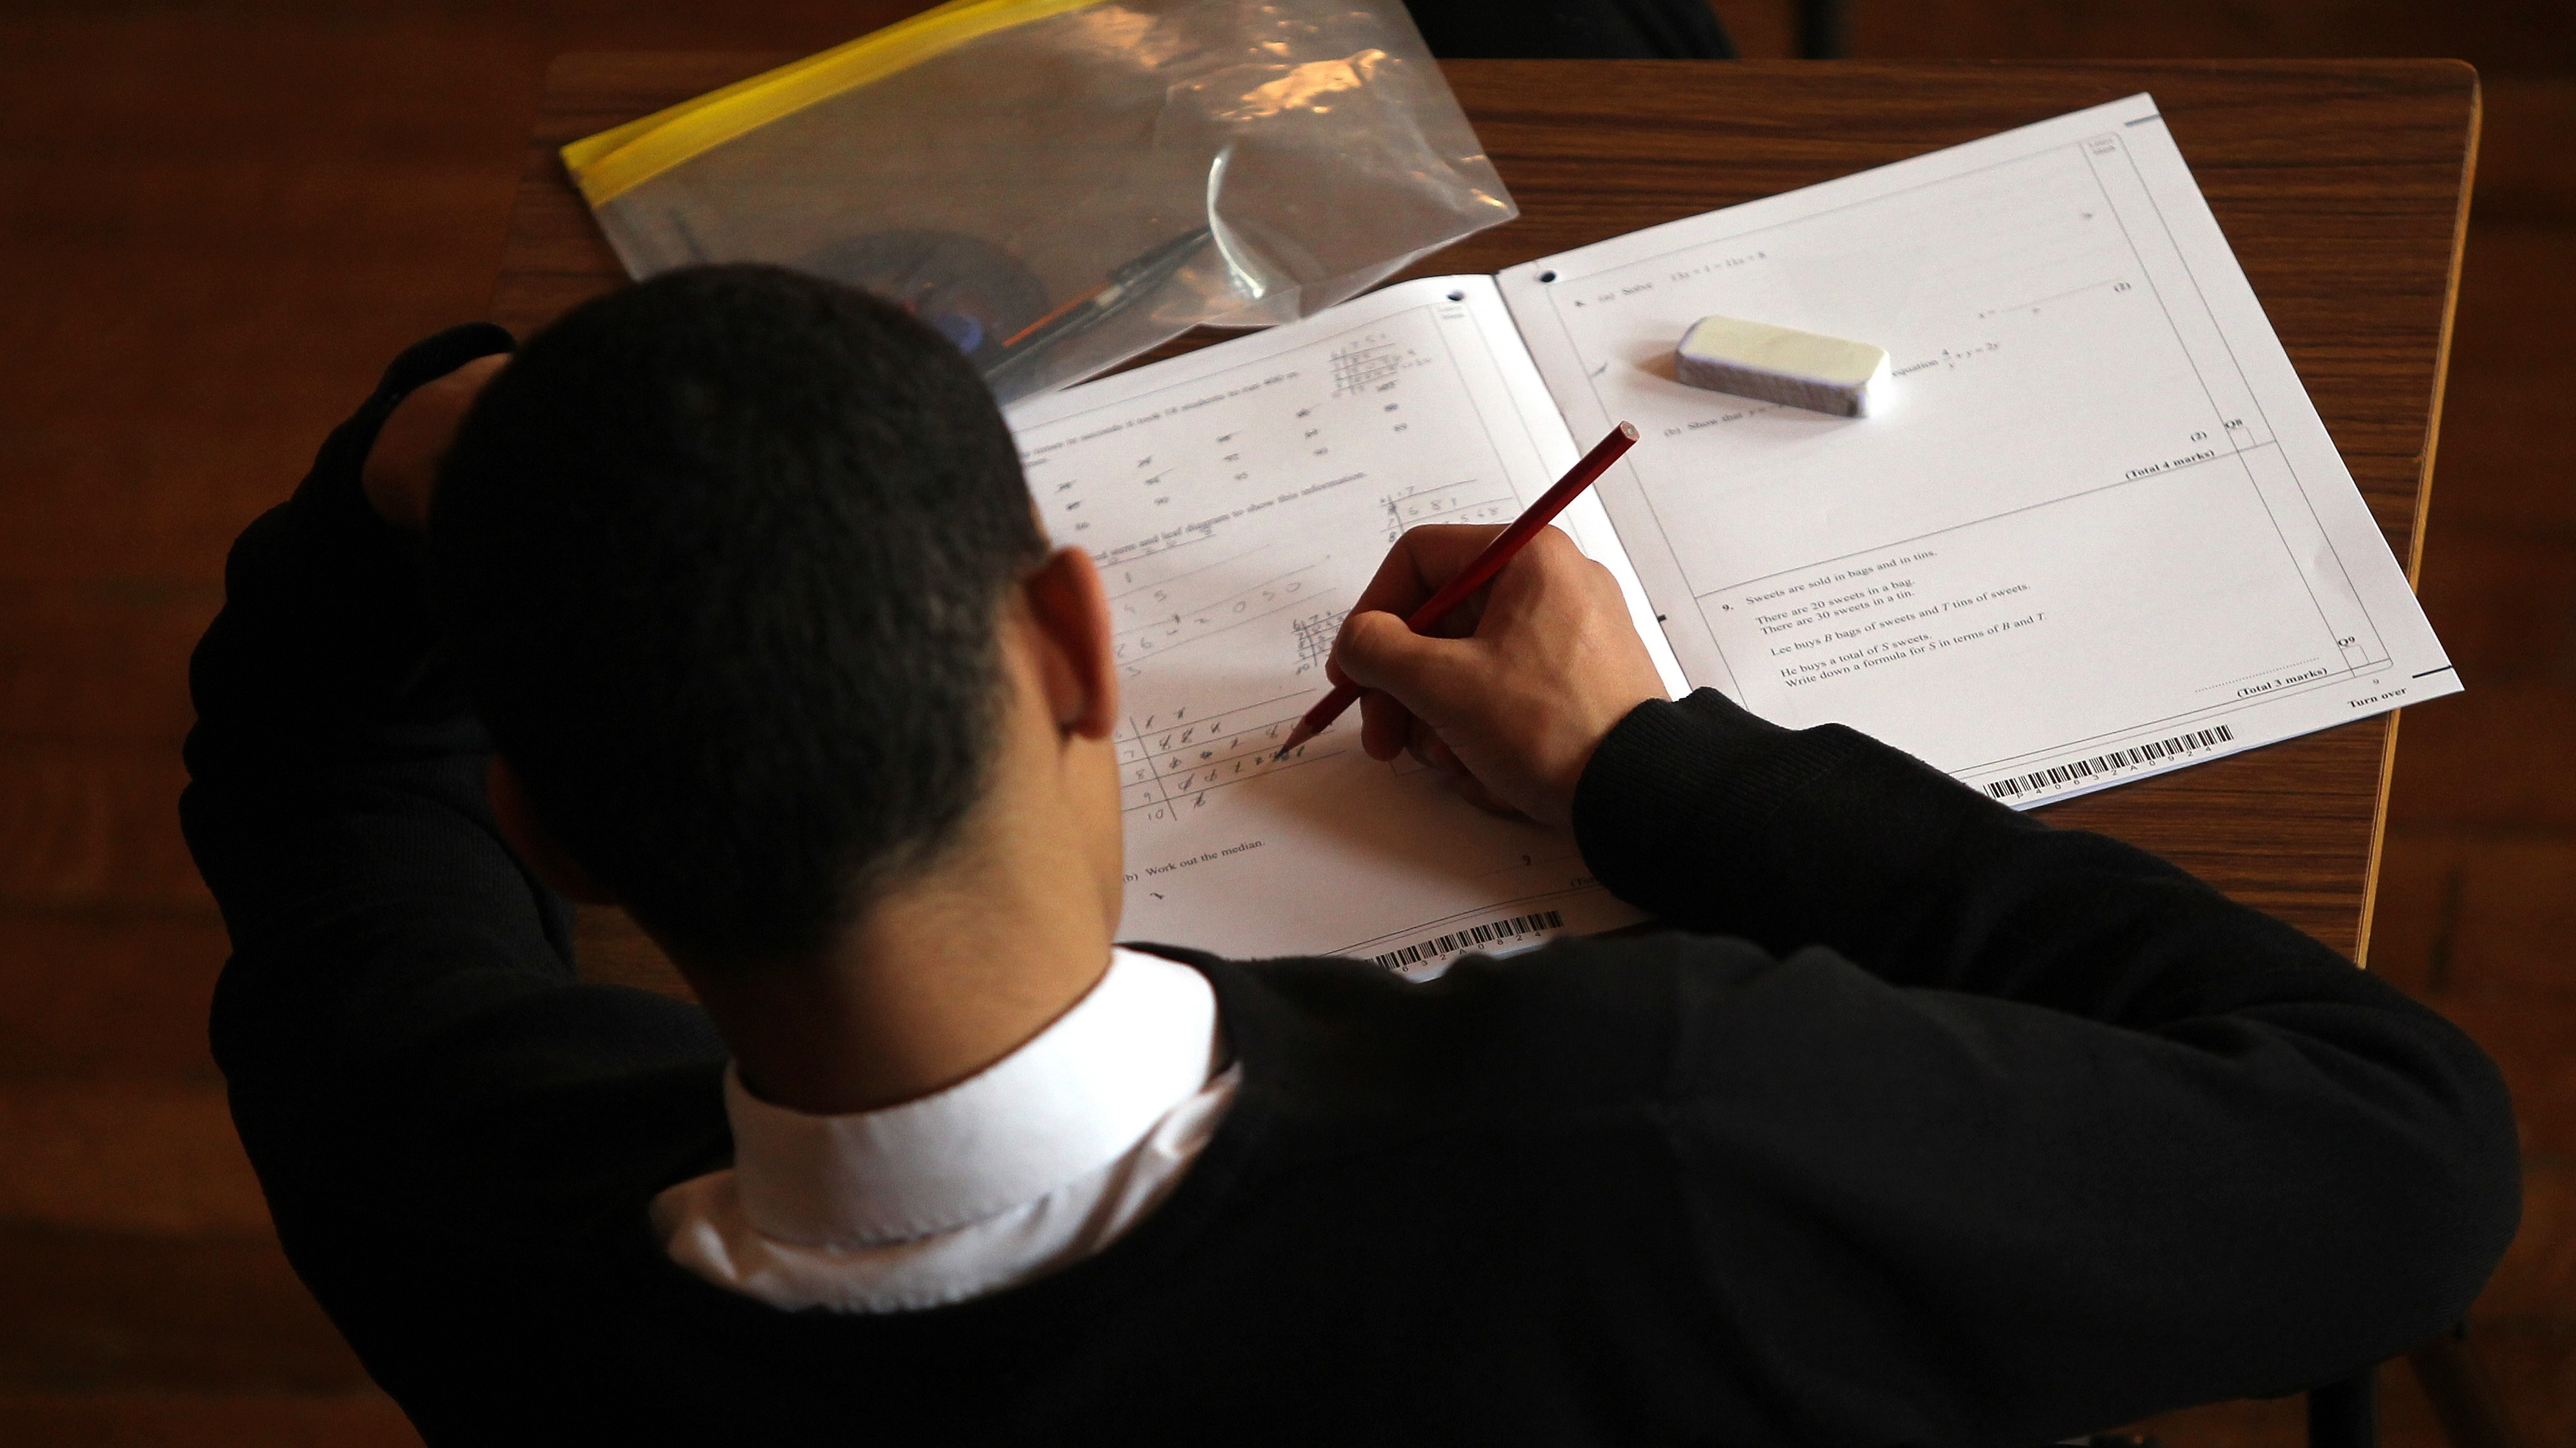 Would it be possible to get an A* in GCSE Maths without doing well on coursework?